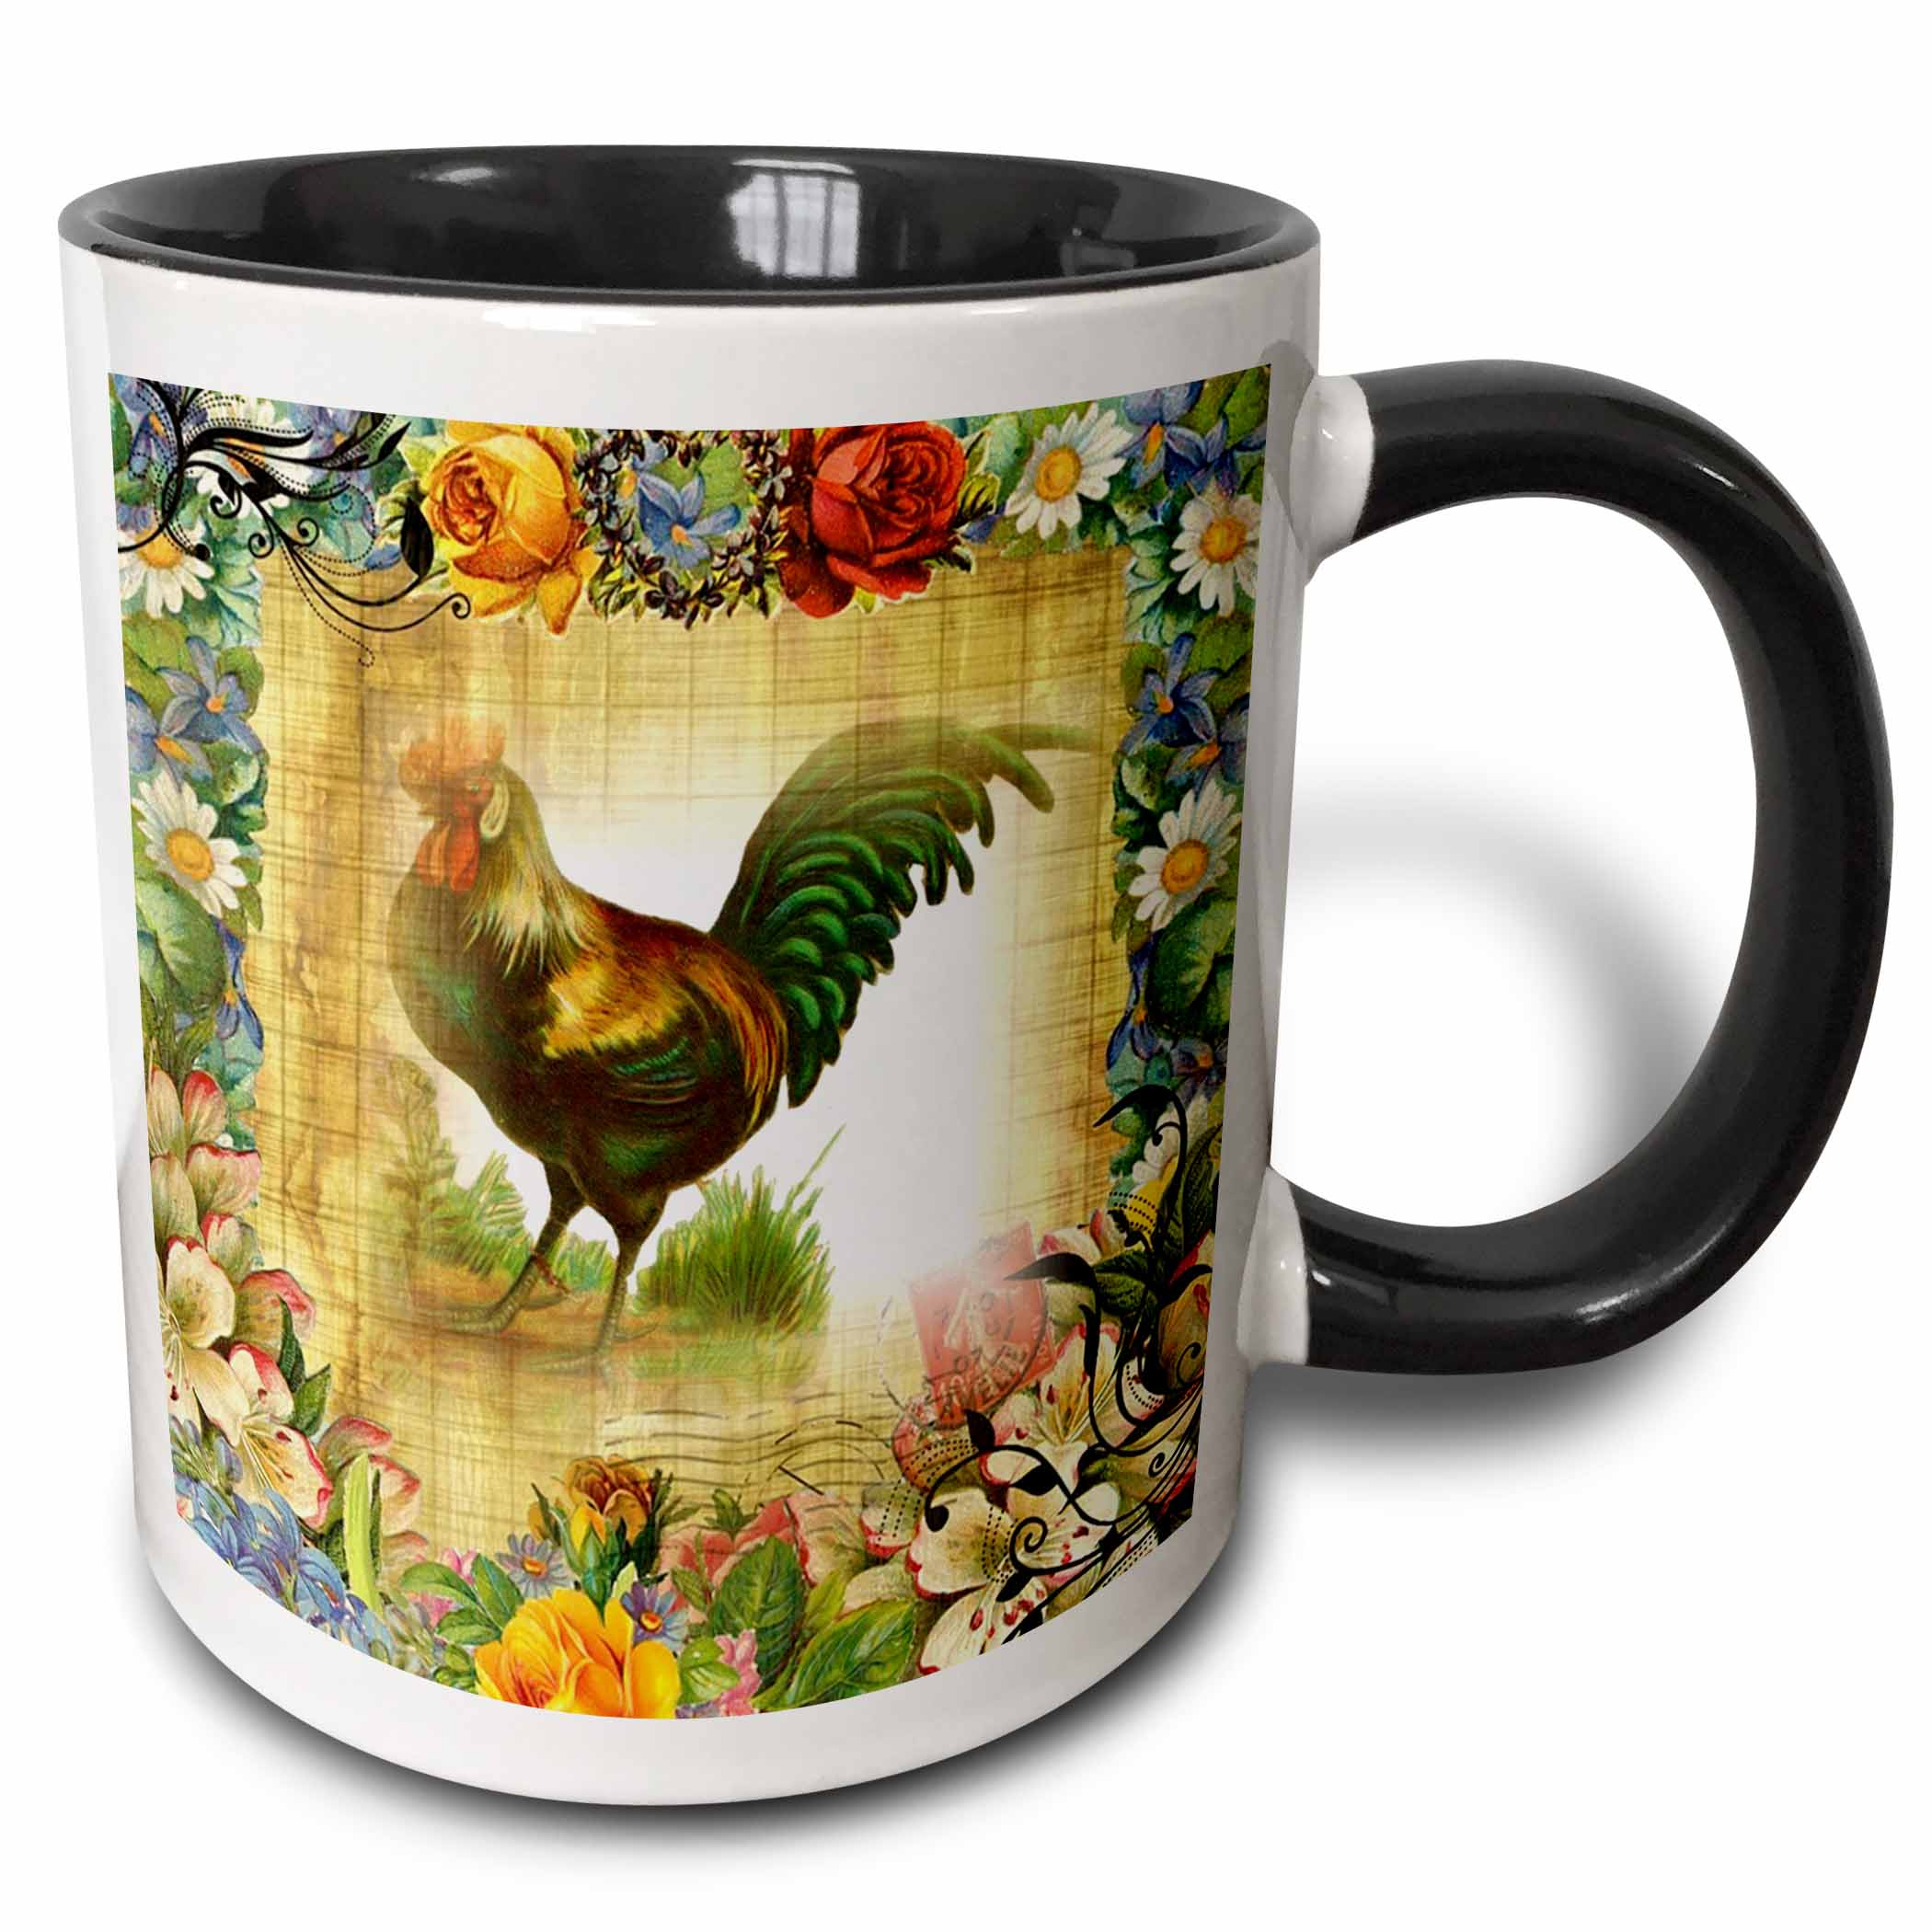 3dRose Image of Country Rooster On Flowered Old Postcard - Two Tone Black Mug, 11-ounce